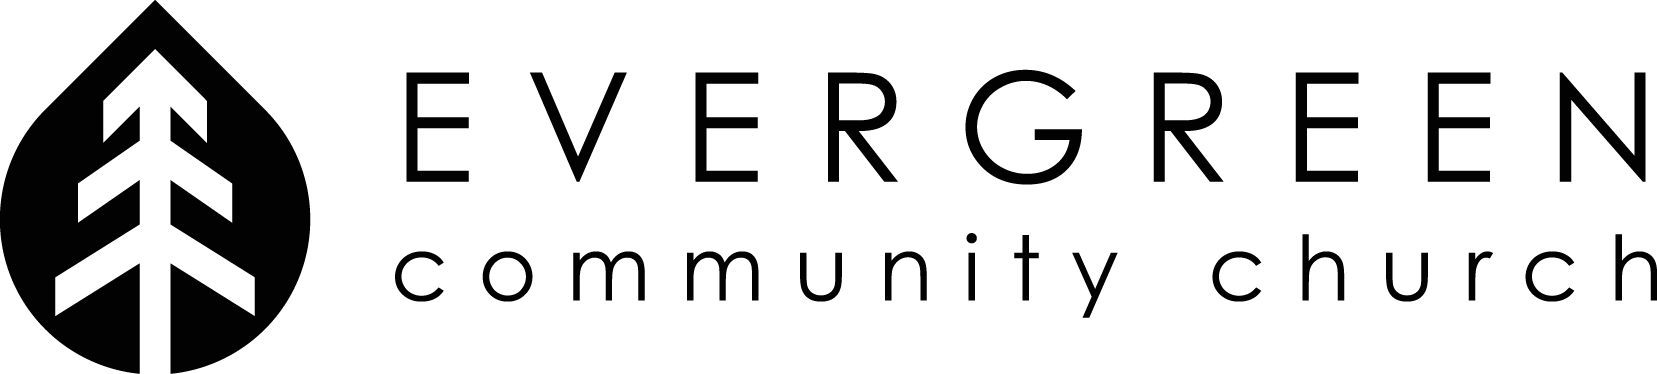 Create a modern, welcoming logo for Evergreen Community Church